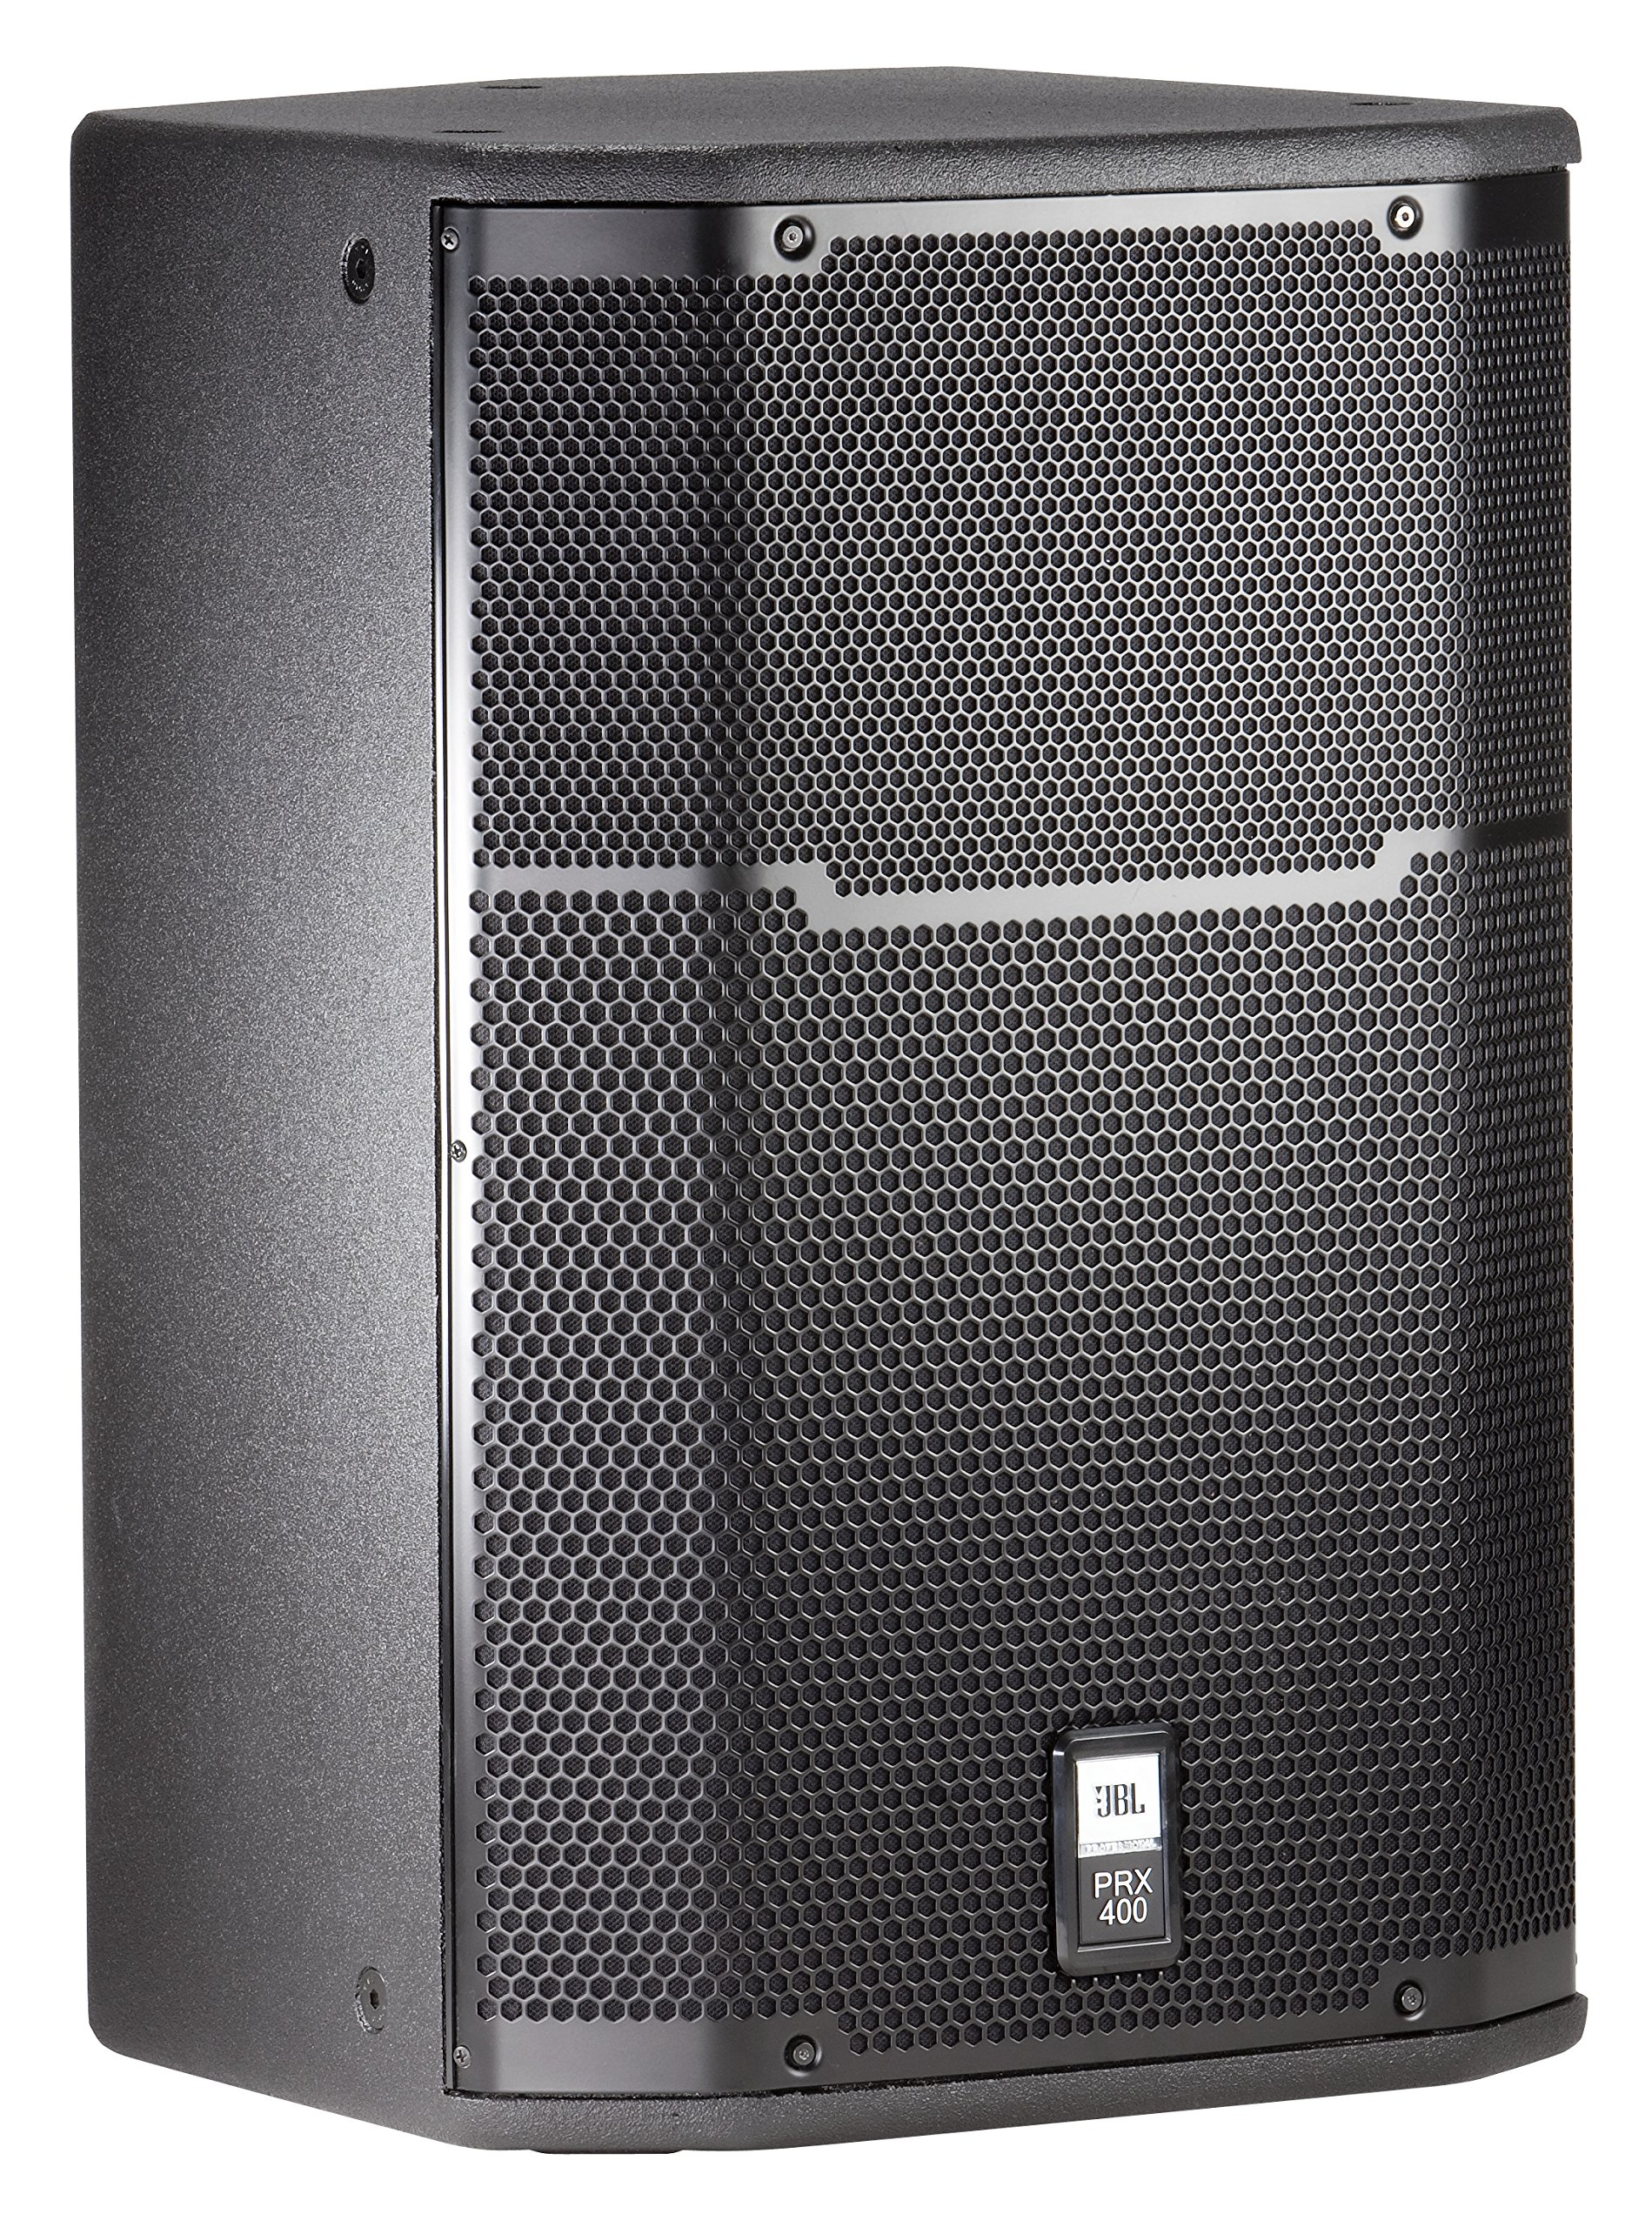 JBL PRX415M 15'' Portable 2-way Passive Utility Stage Monitor and Loudspeaker System, Black by JBL Professional